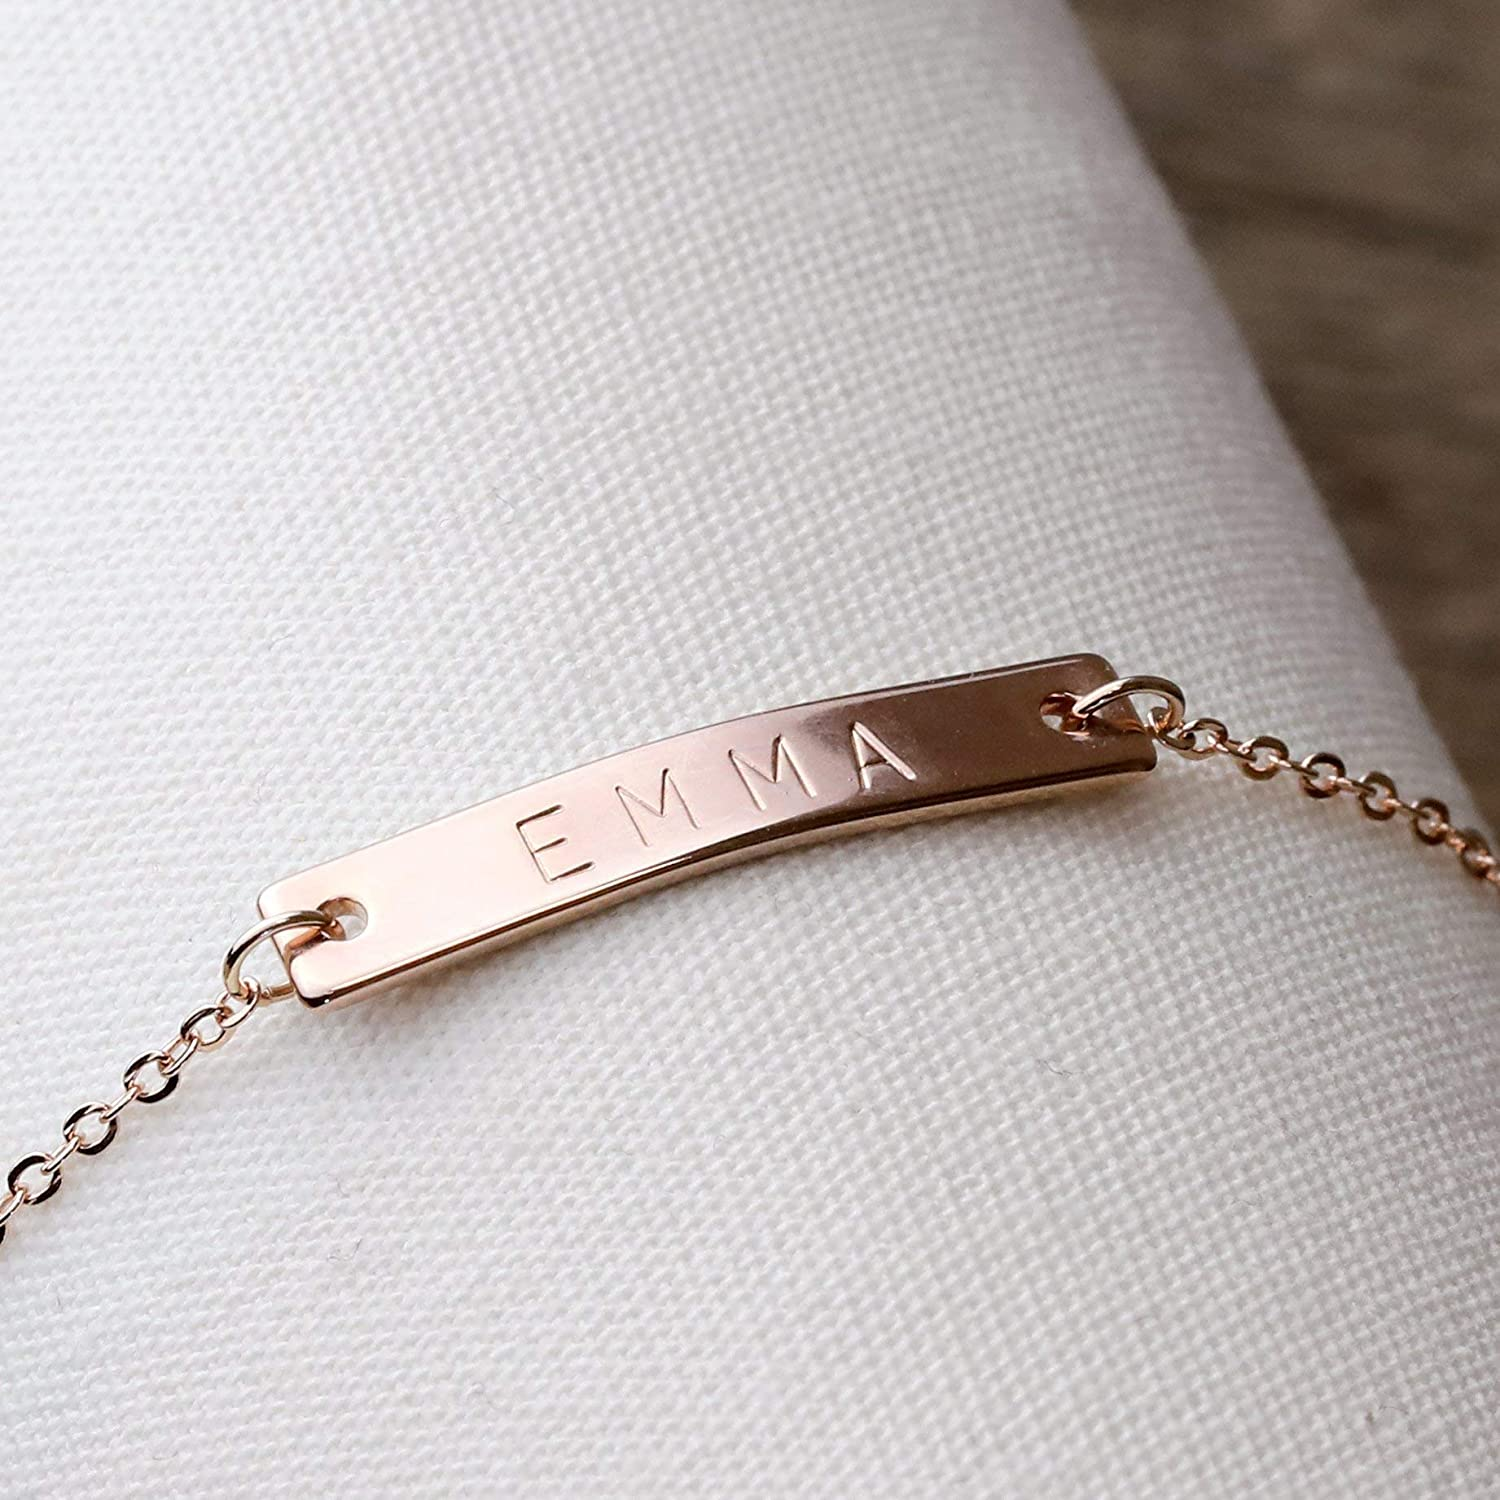 A Personalized Bridesmaid Jewelry Wedding Party Gifts Women Rose Gold Bracelet Flower Girl Gift for Her 3BR